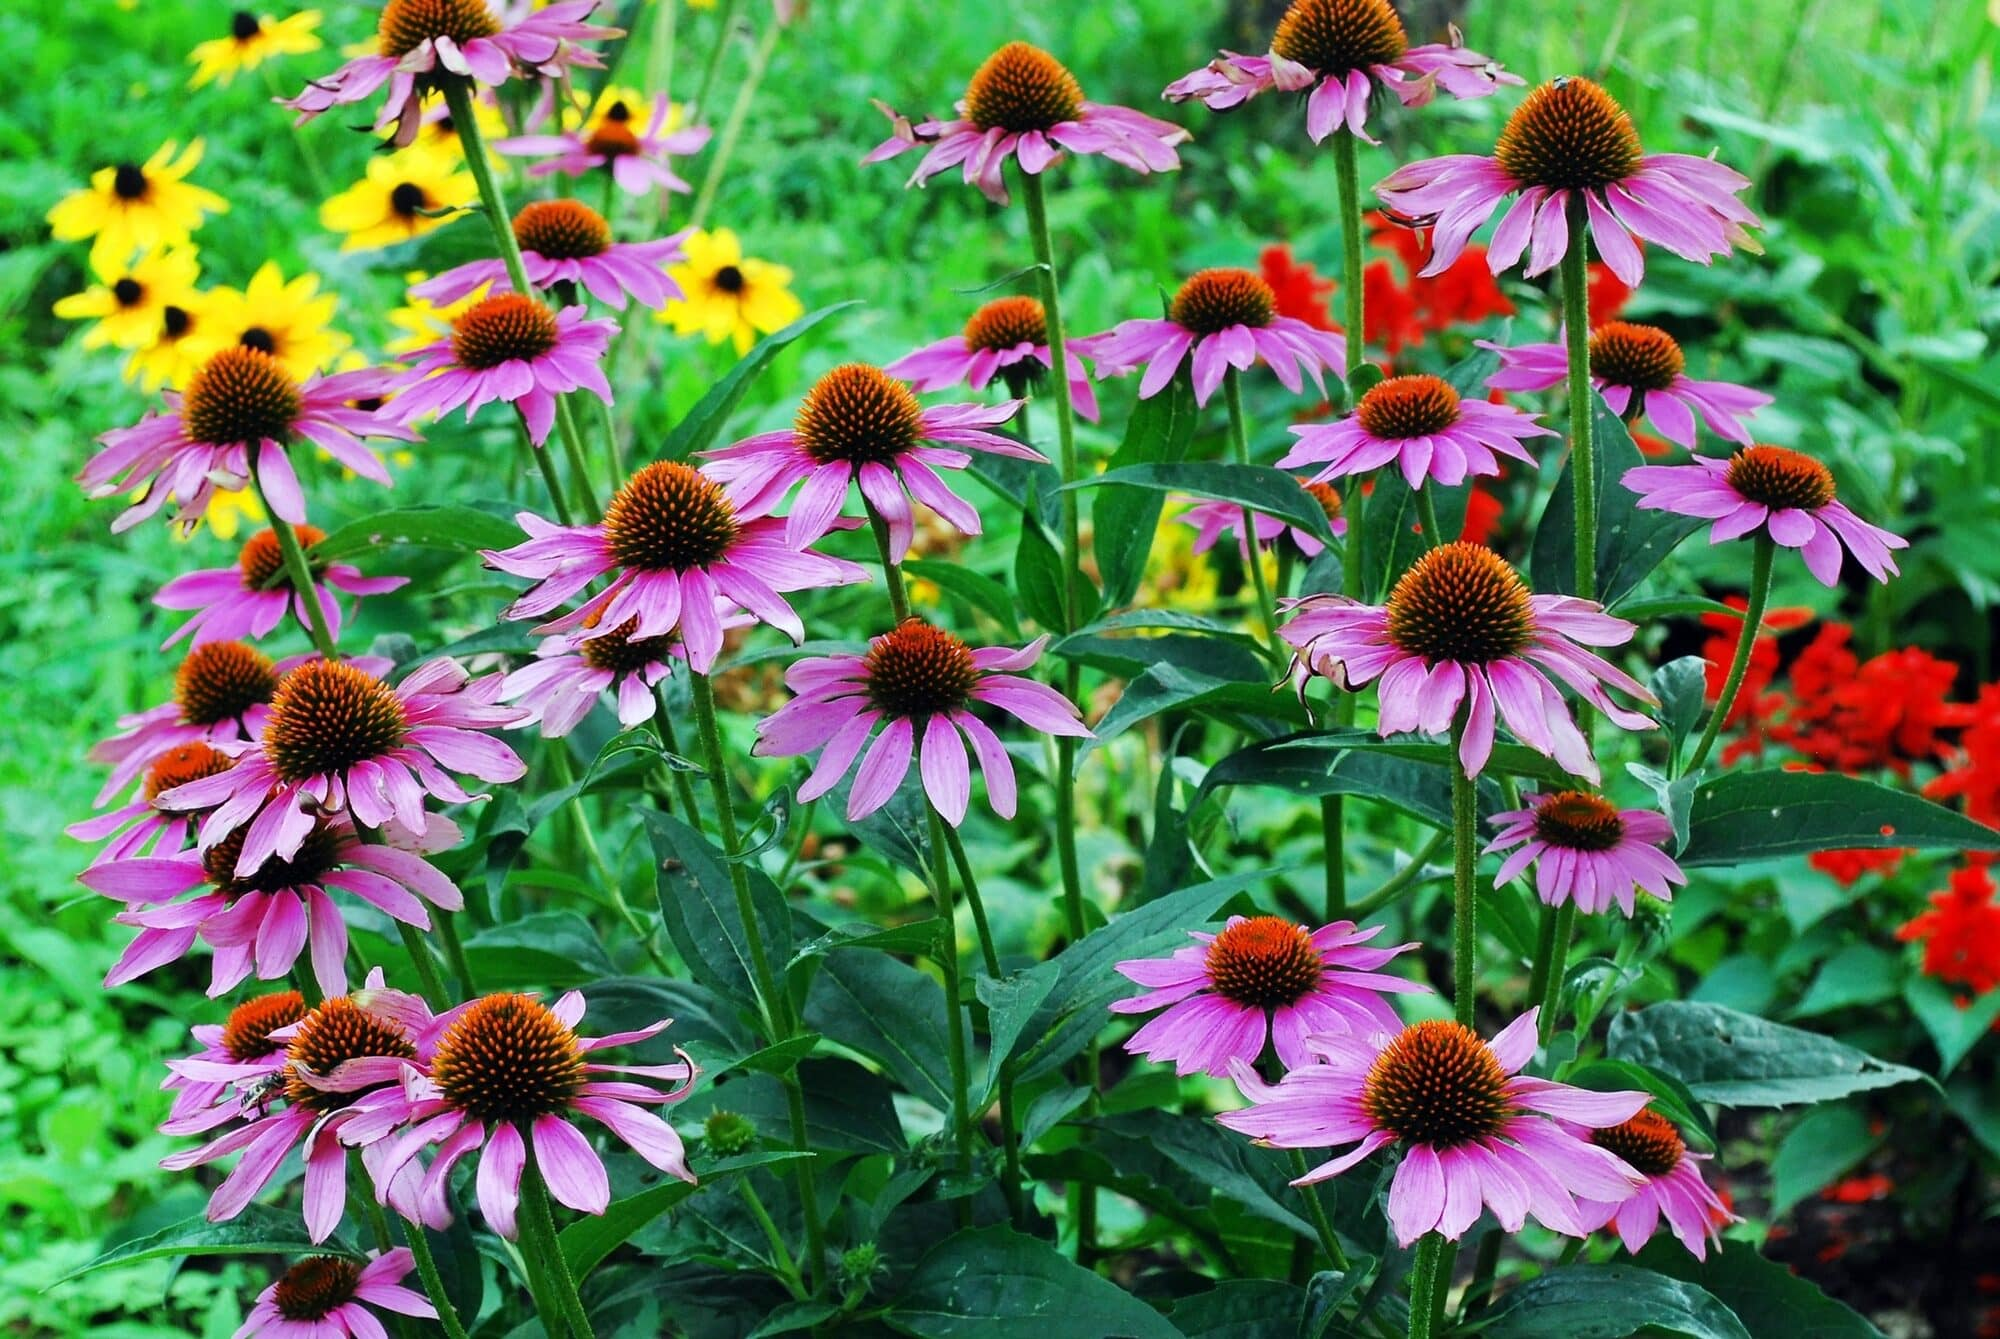 Echinacea: A Native American Cure-All